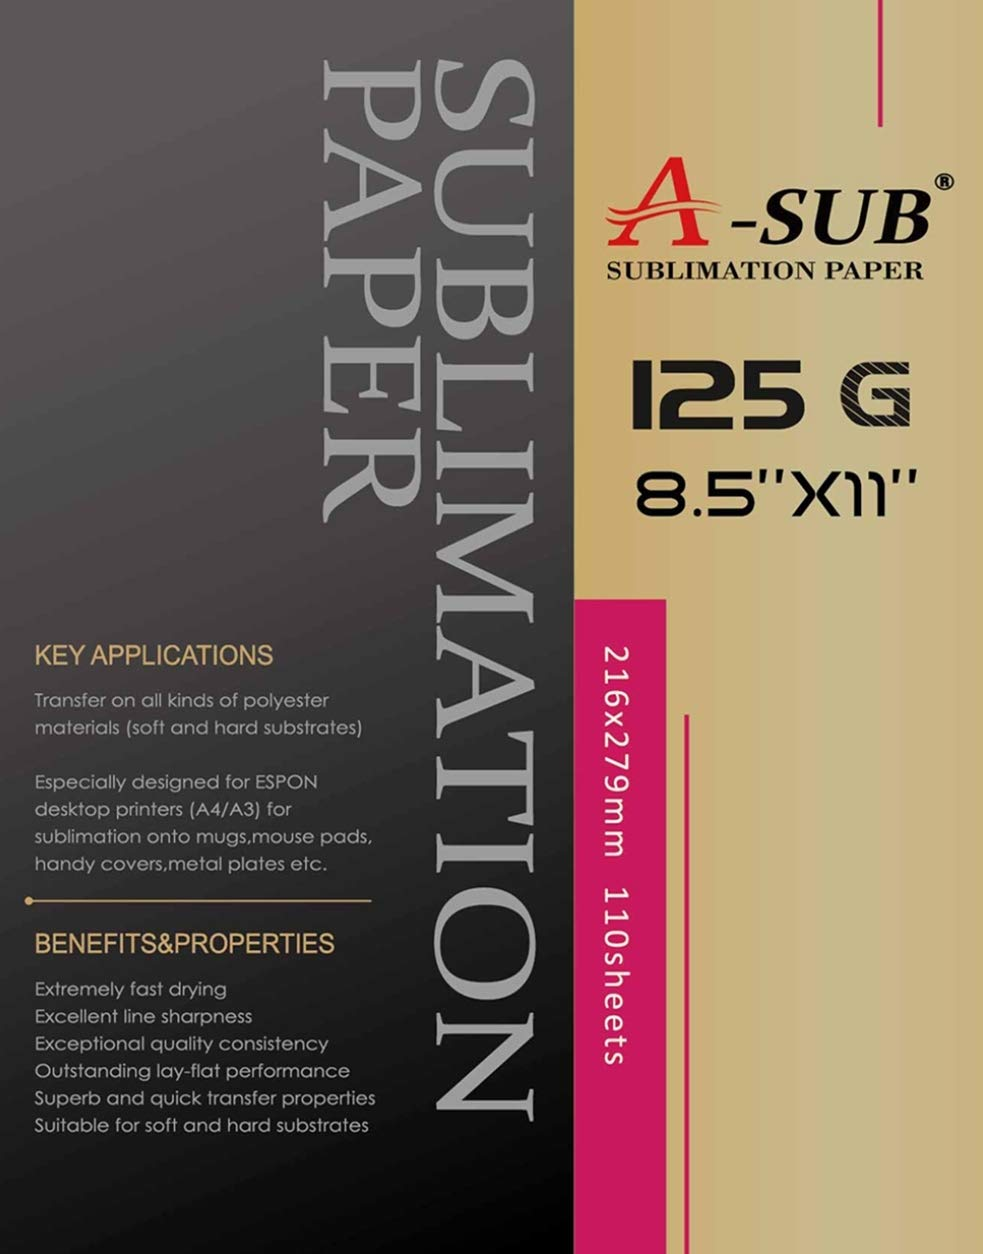 A-SUB Sublimation Paper 8.5'' x 11'' for Any Inkjet Printer with Sublimation Ink,110 Sheets Letter Size